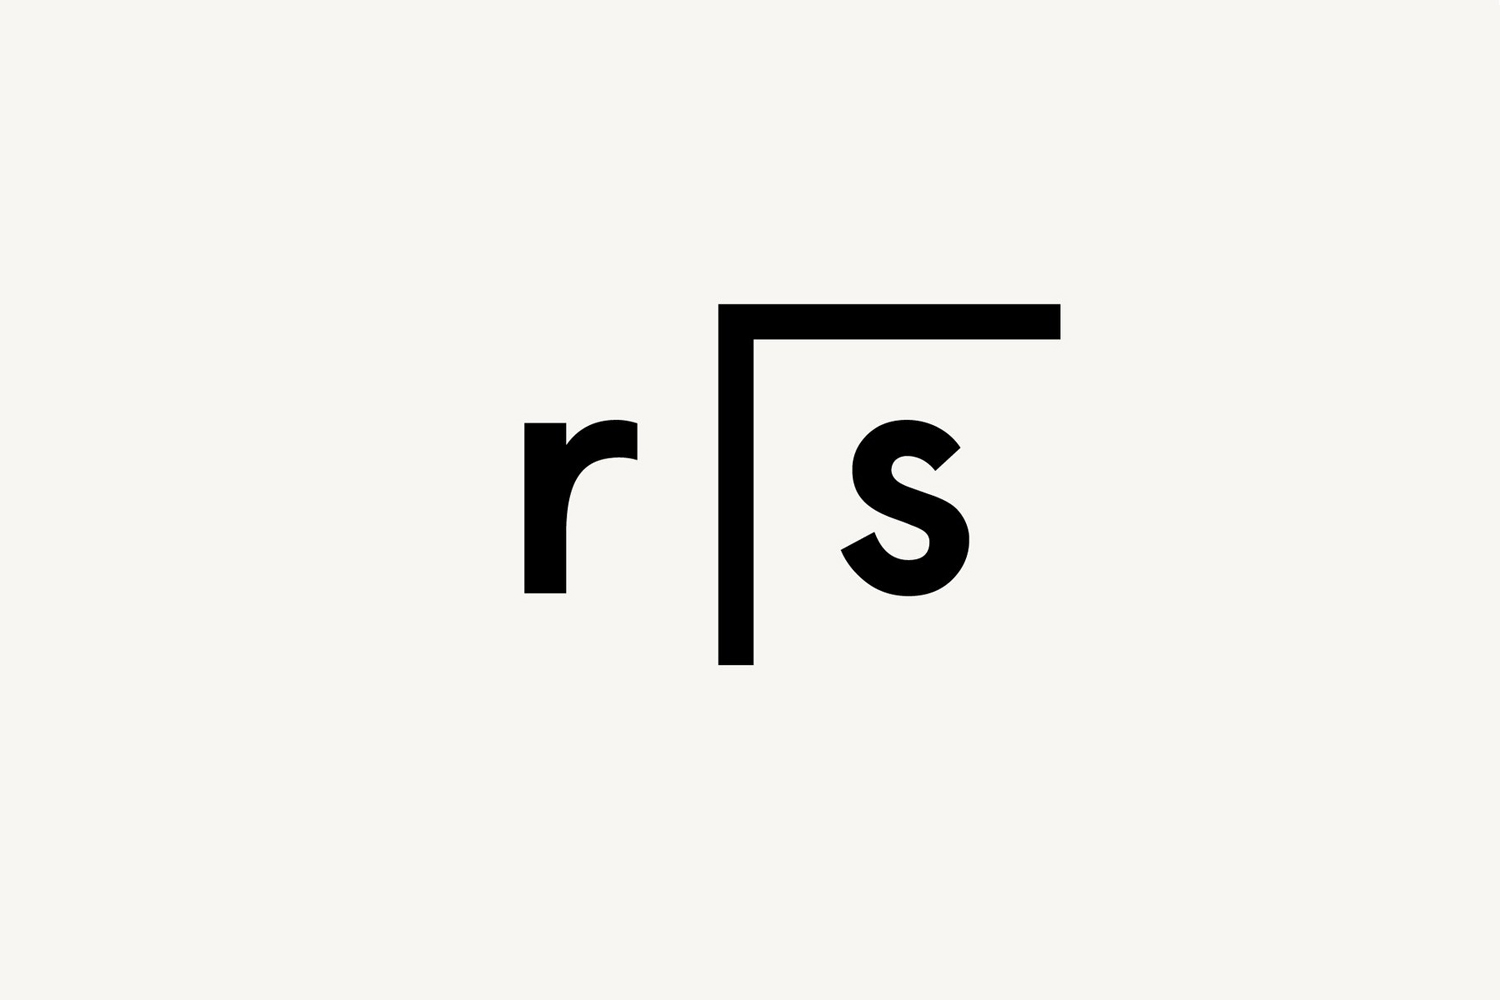 Monogram for Researchers In Schools by graphic design studio Paul Belford Ltd., UK